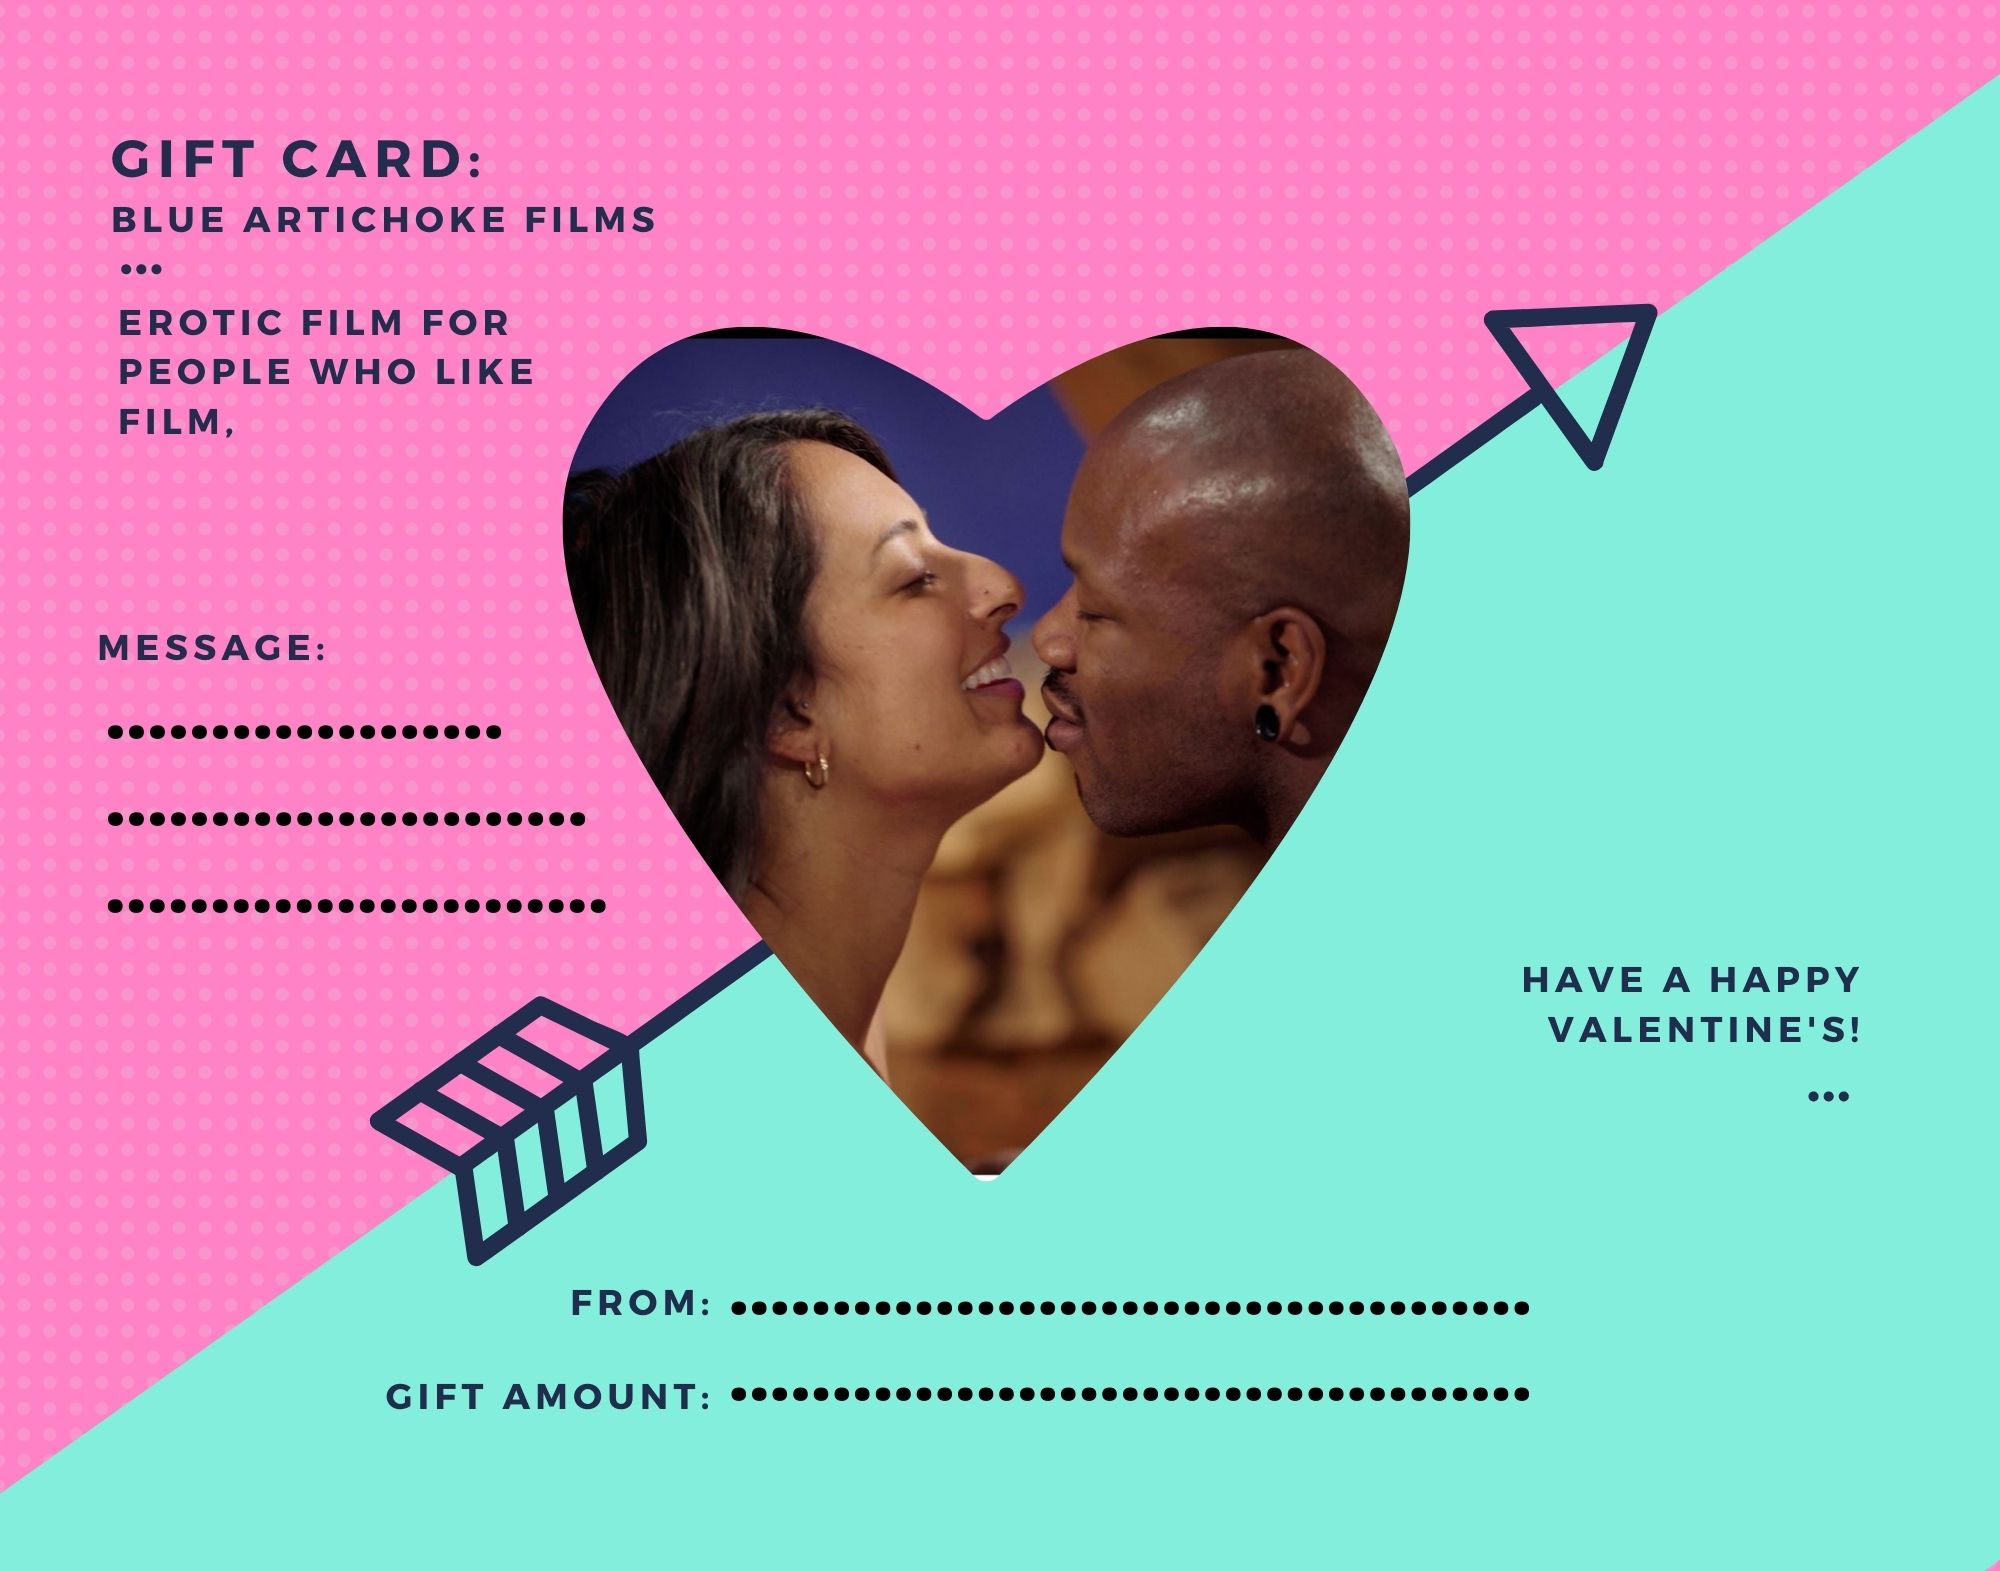 Blue Artichoke Films gift card for Valentine's Day, with image of Wild Card'sKali Sudhra and Bishop Black